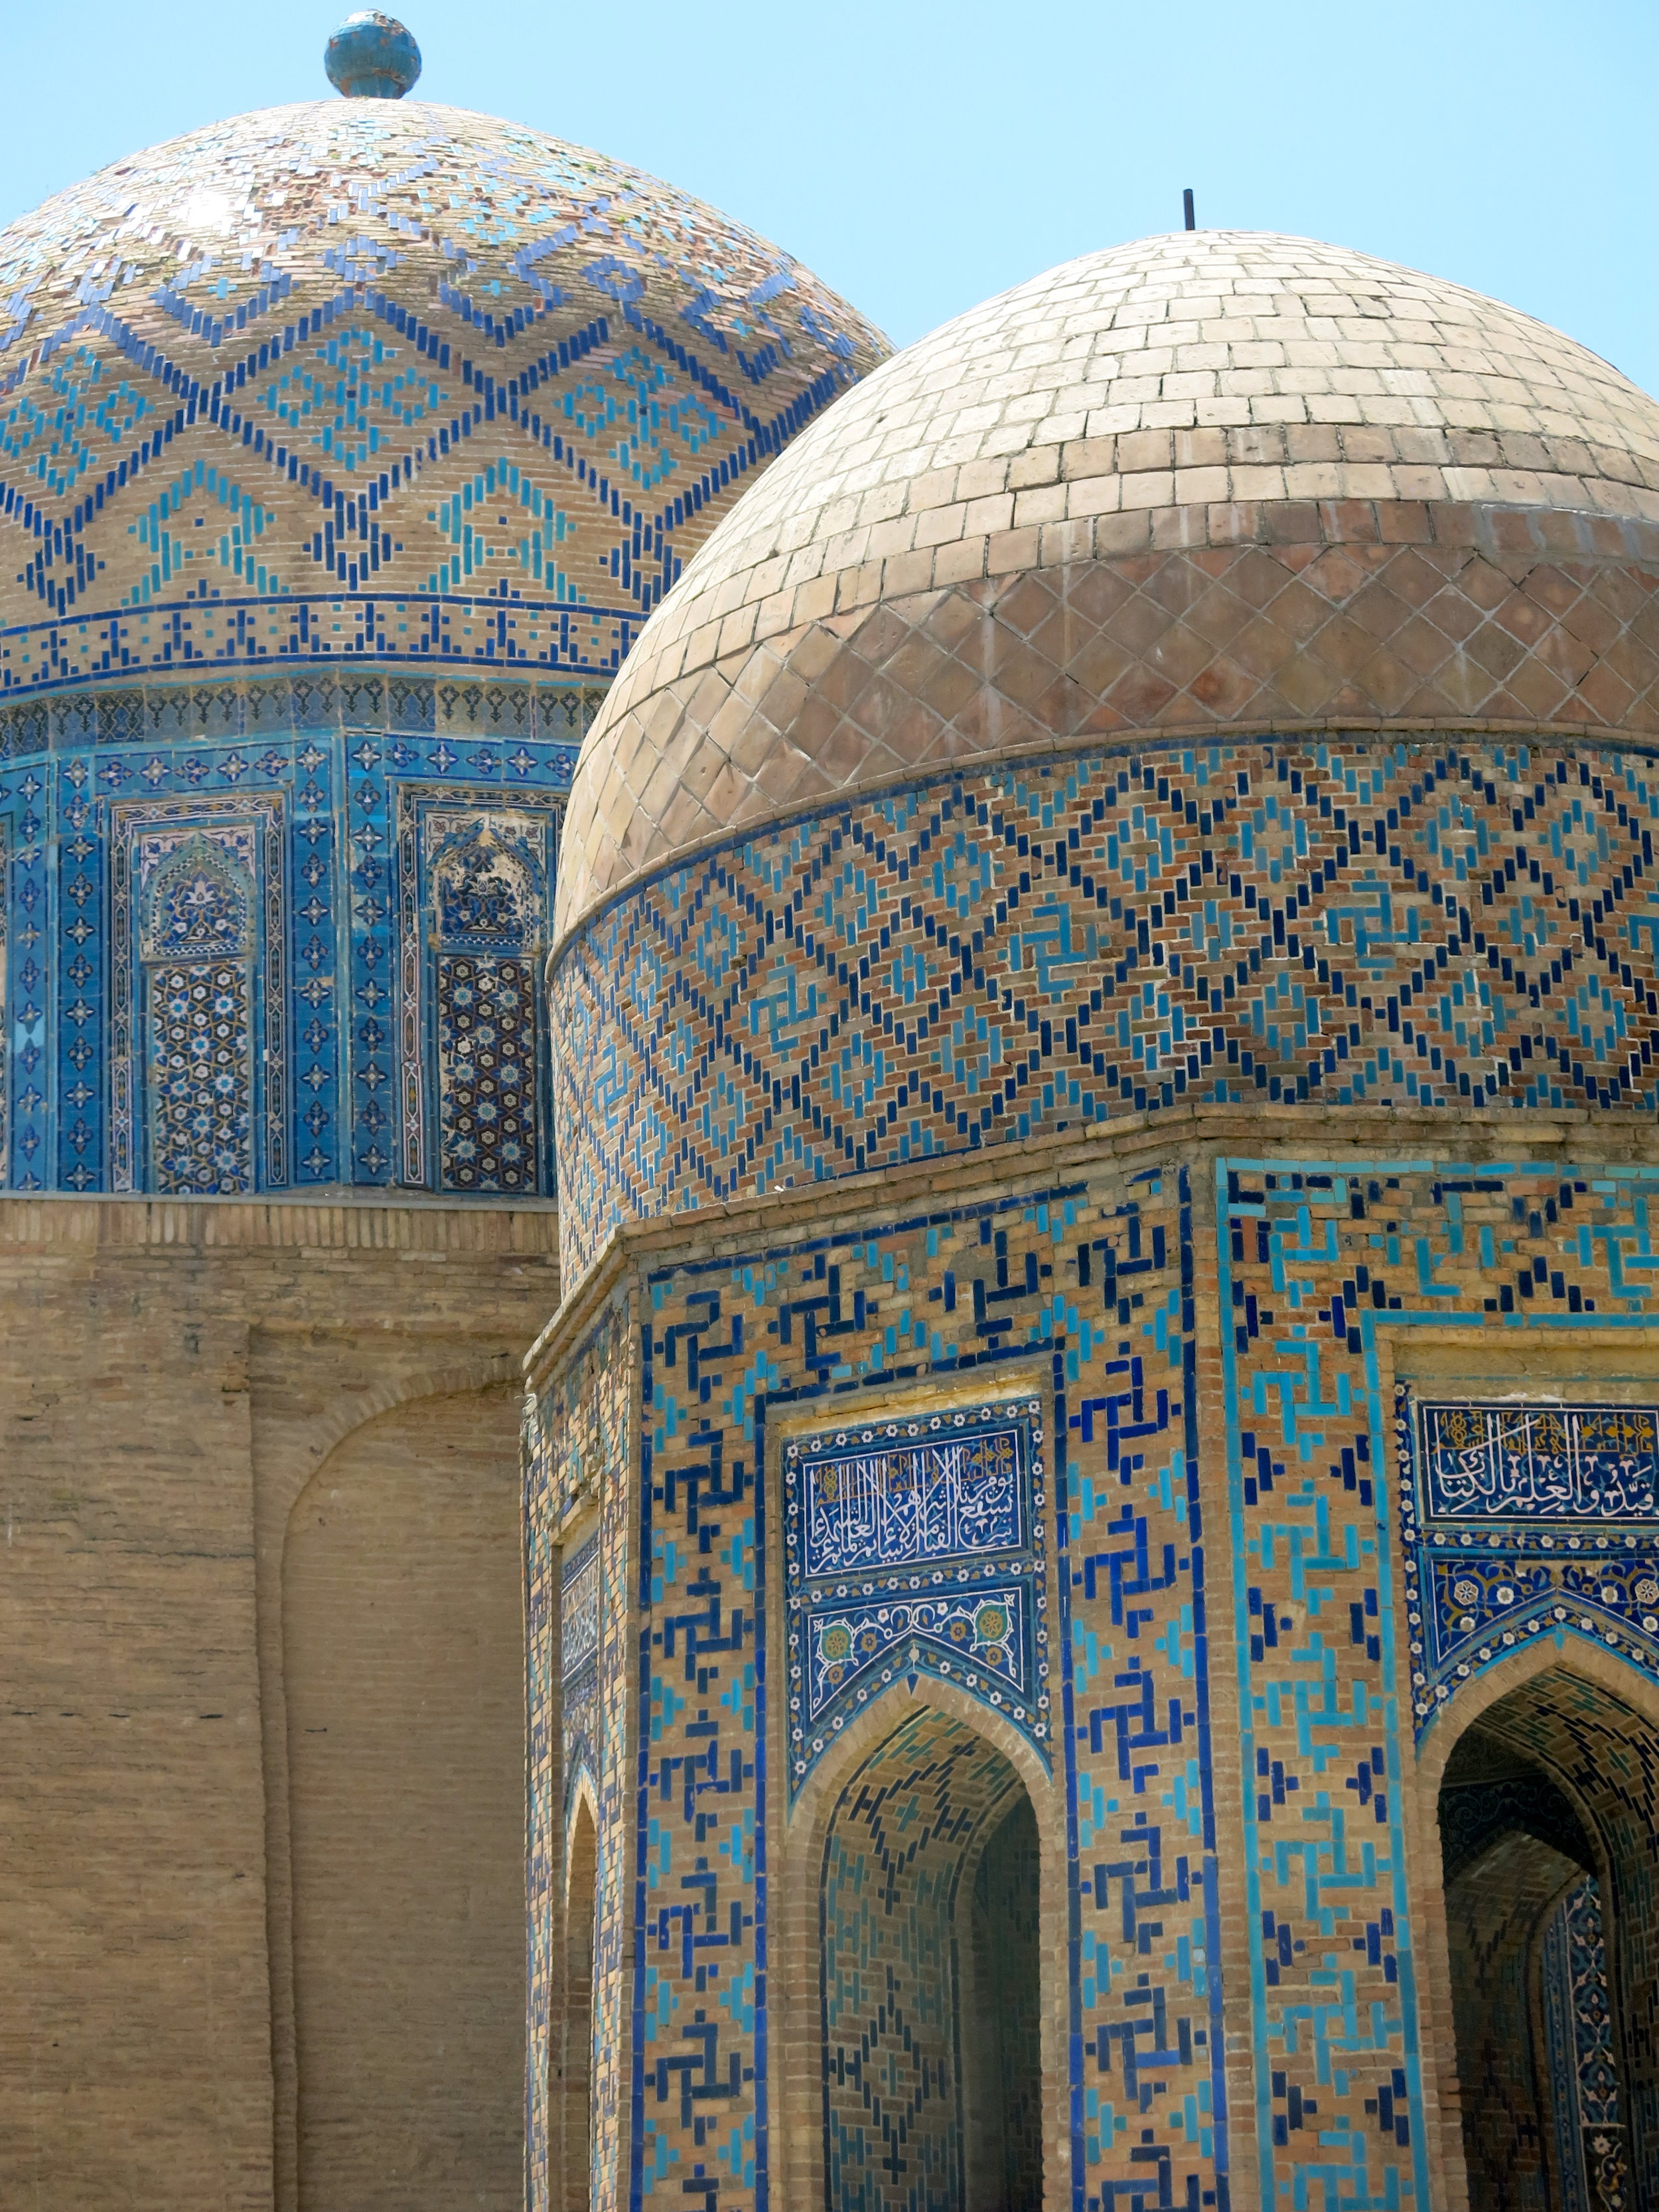 Shah-i-Zinda hosts the tombs of famous locals from the past